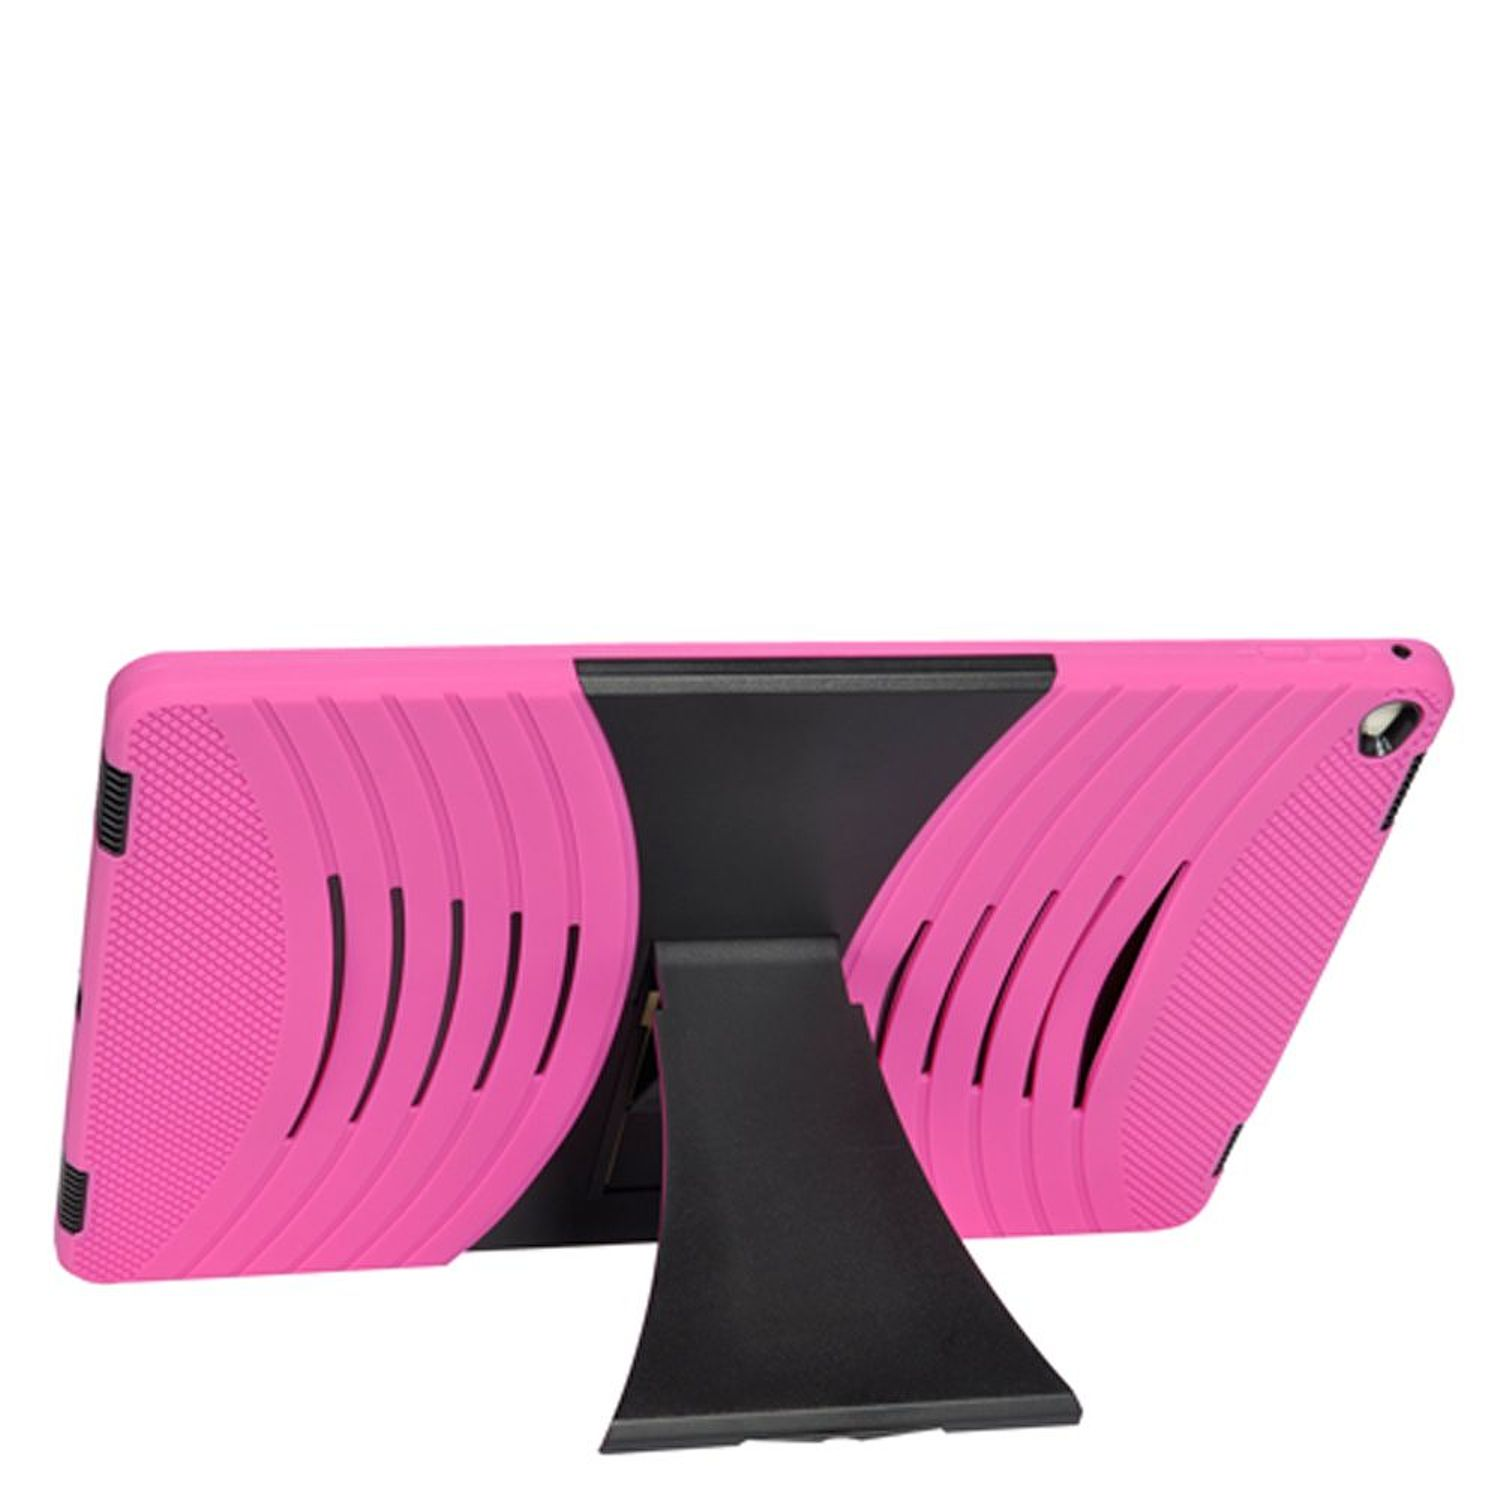 """iPad Pro 12.9"""" Cover Case, by Insten Dual Layer [Shock Absorbing] Hybrid Stand Rubber Silicone/Plastic Case Cover For Apple iPad Pro 12.9"""", Hot Pink/Black"""